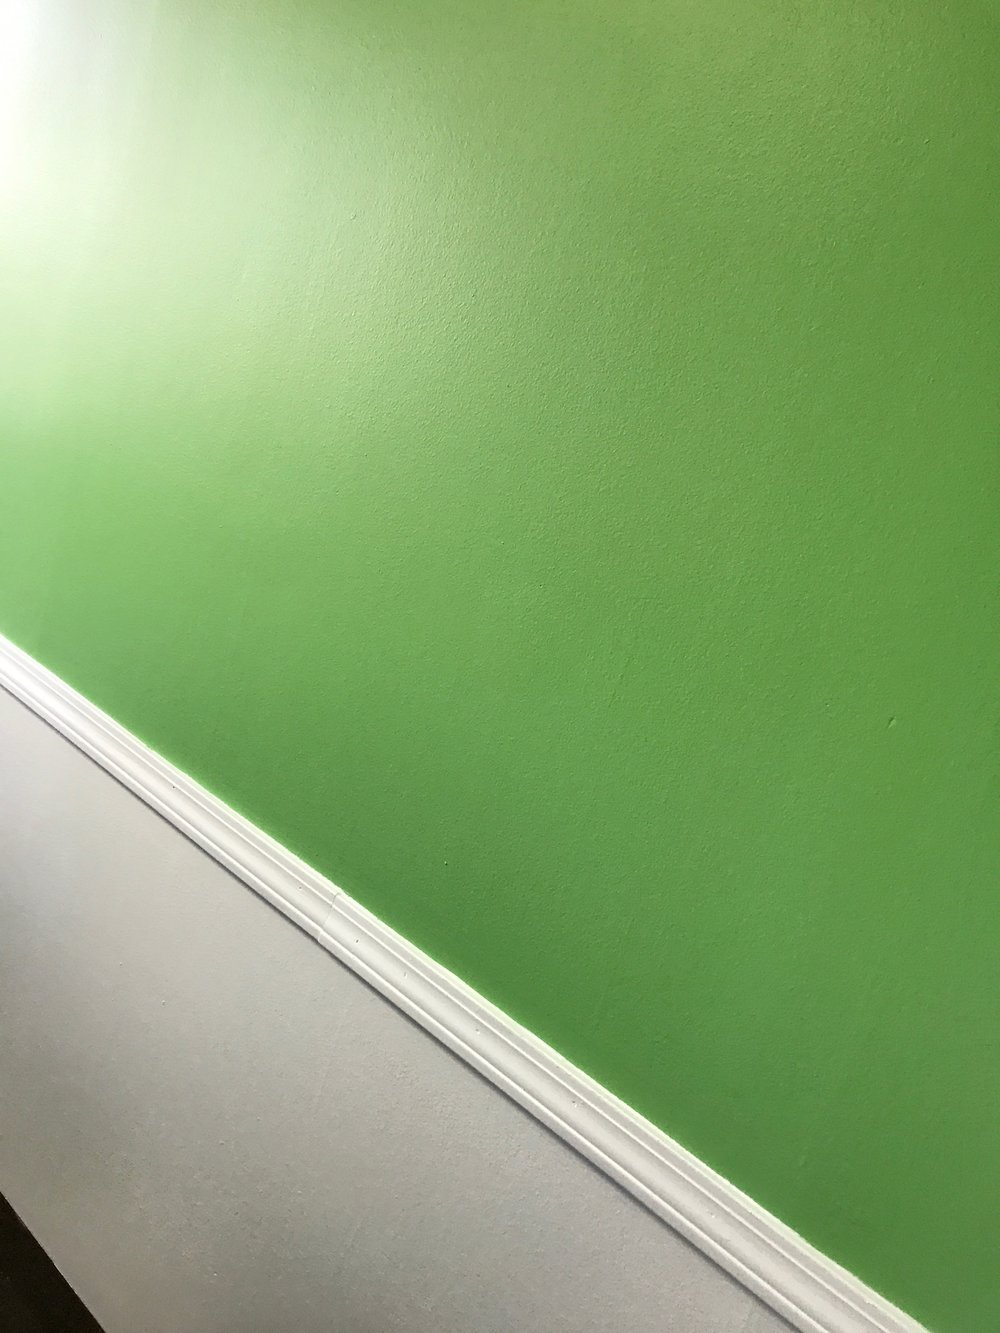 Daring Green for Parma Housing